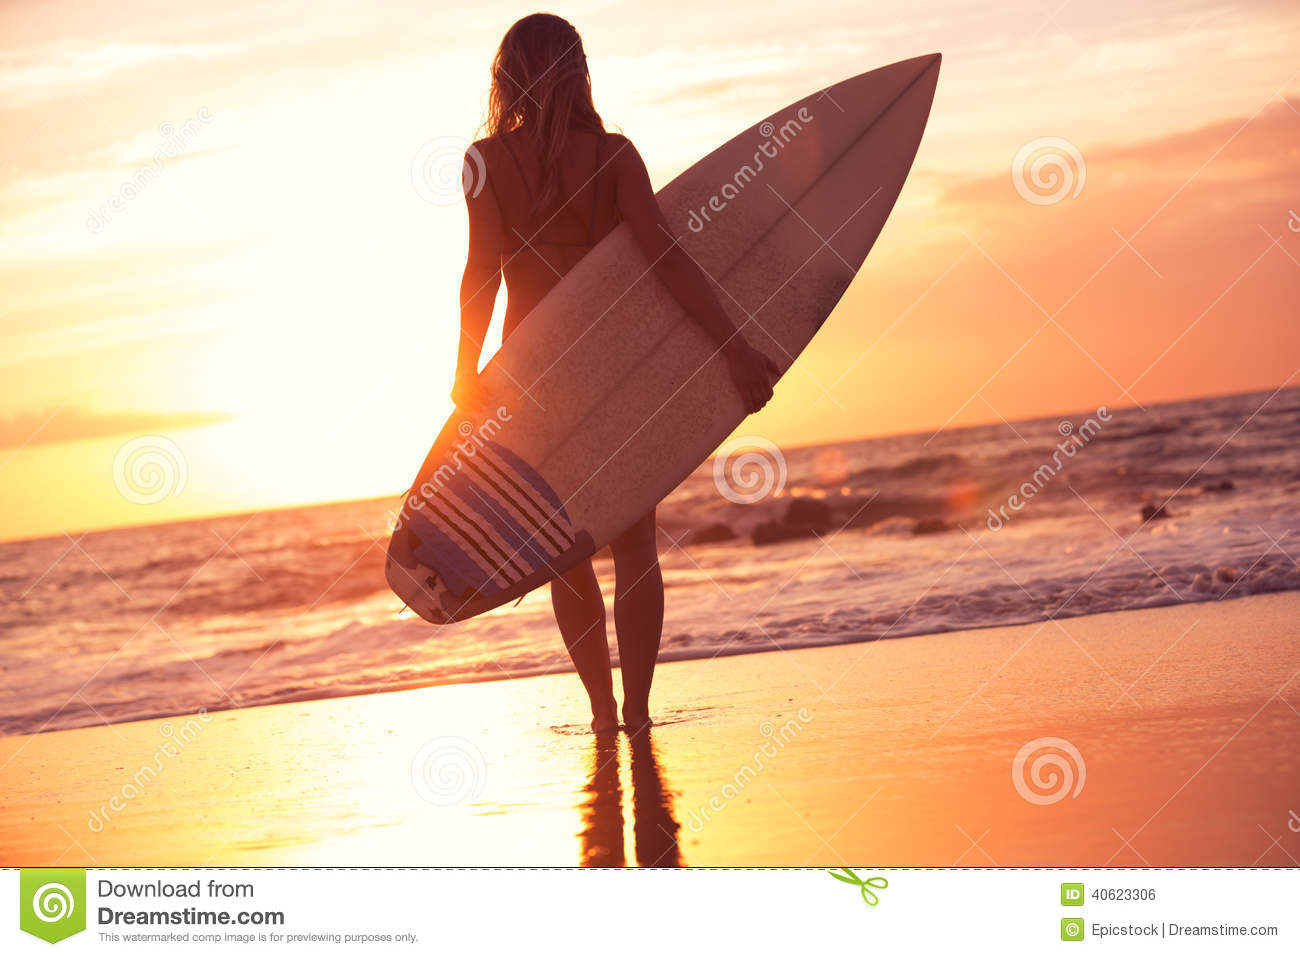 e3917f2cac Silhouette Surfer Girl On The Beach At Sunset Stock Photo - Image of ...